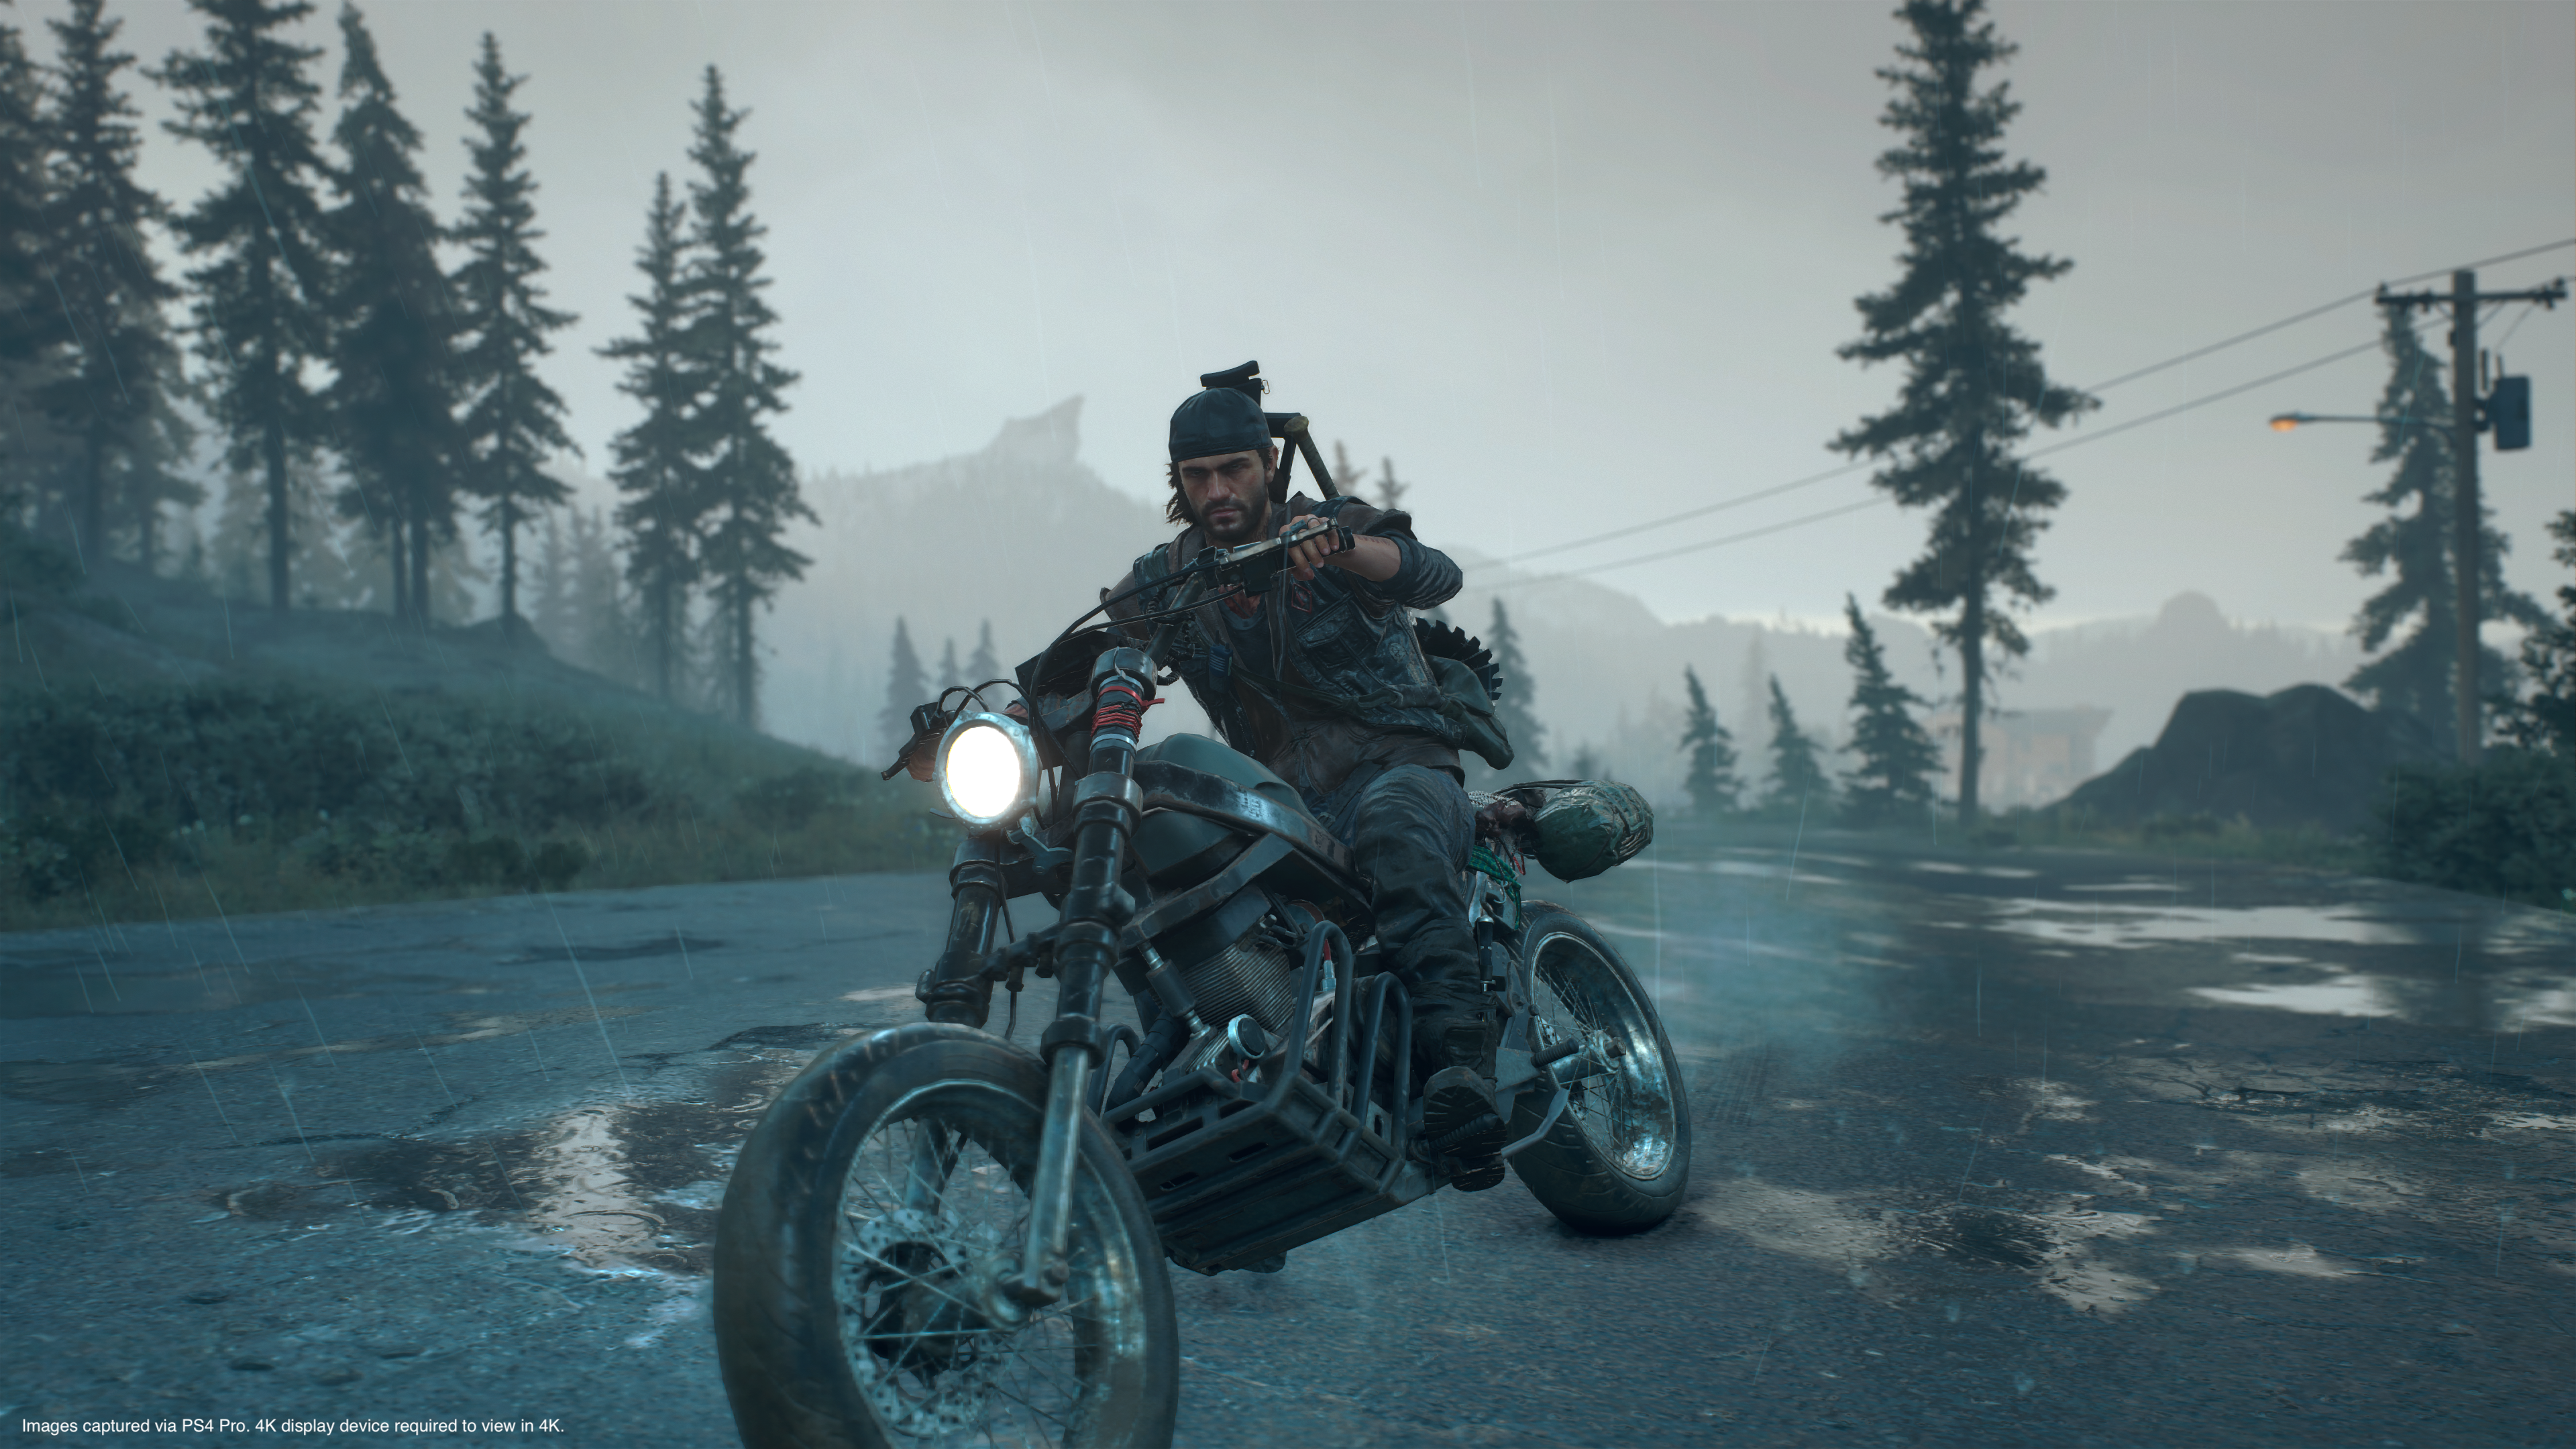 Days Gone review: lavishly produced, painfully generic - The Verge